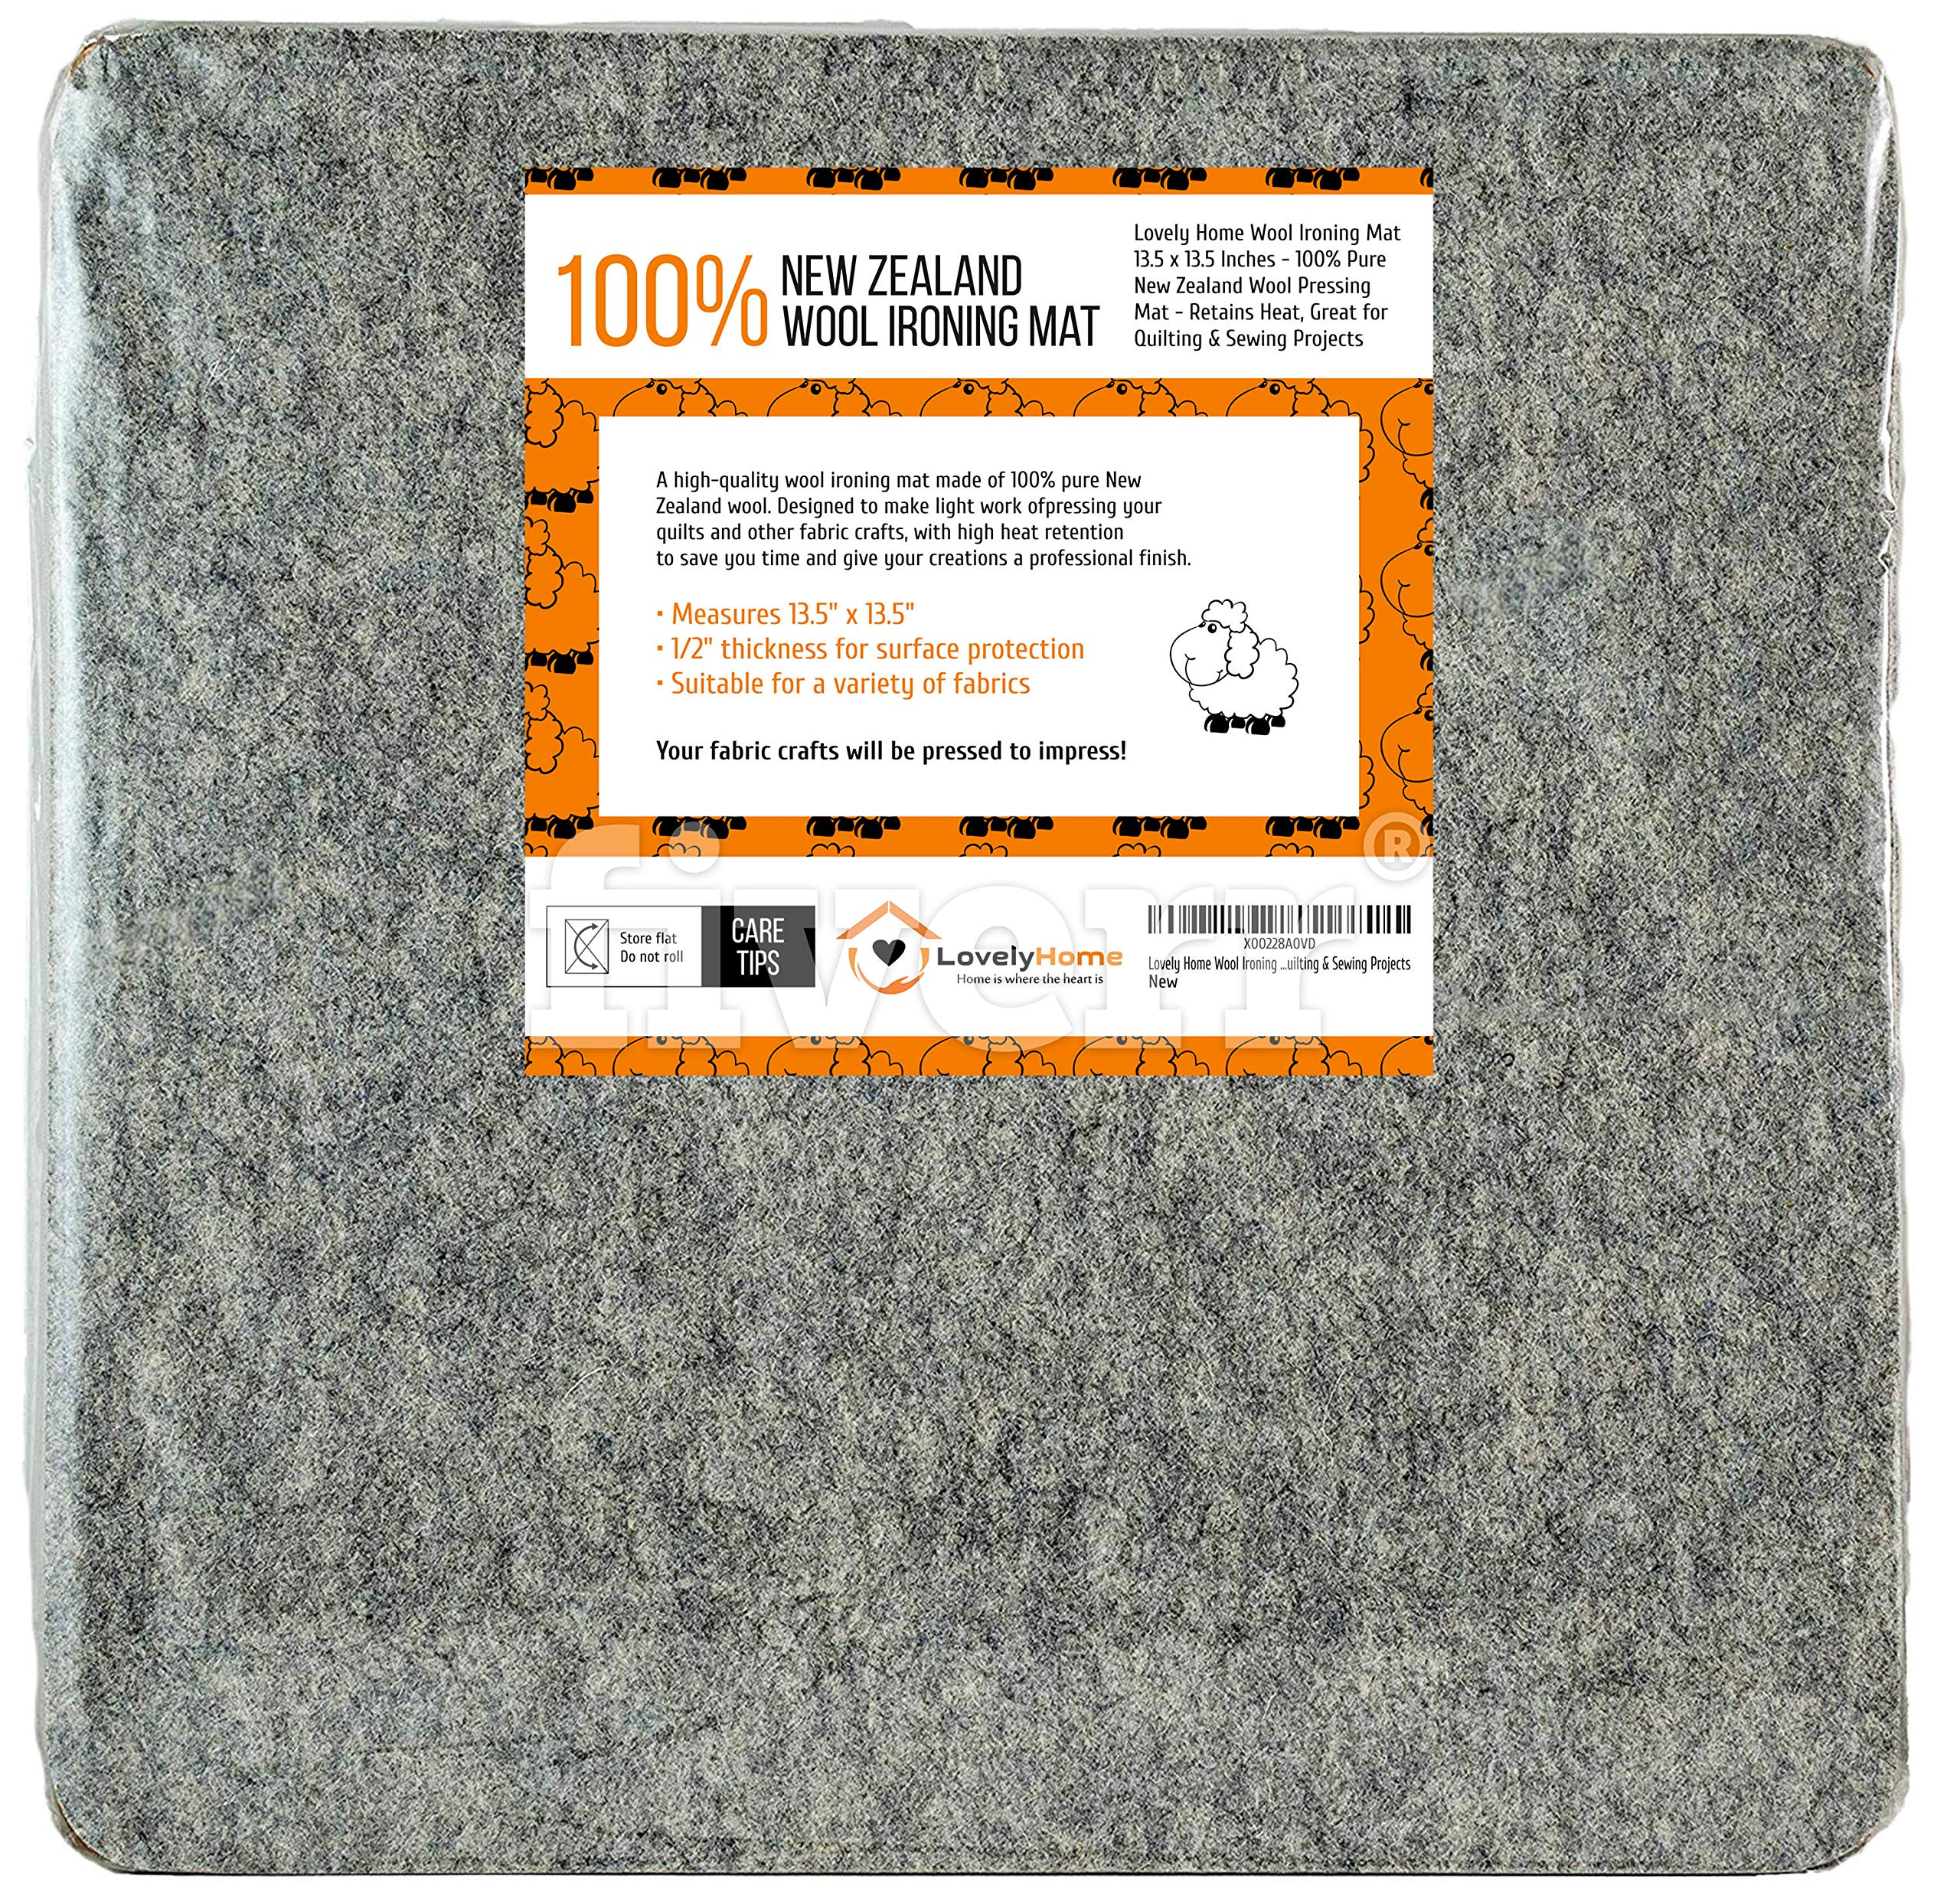 Lovely Home Wool Ironing Mat 13.5 x 13.5 Inches - 100% Pure New Zealand Wool Pressing Mat - Retains Heat, Great for Quilting & Sewing Projects by Lovely Home